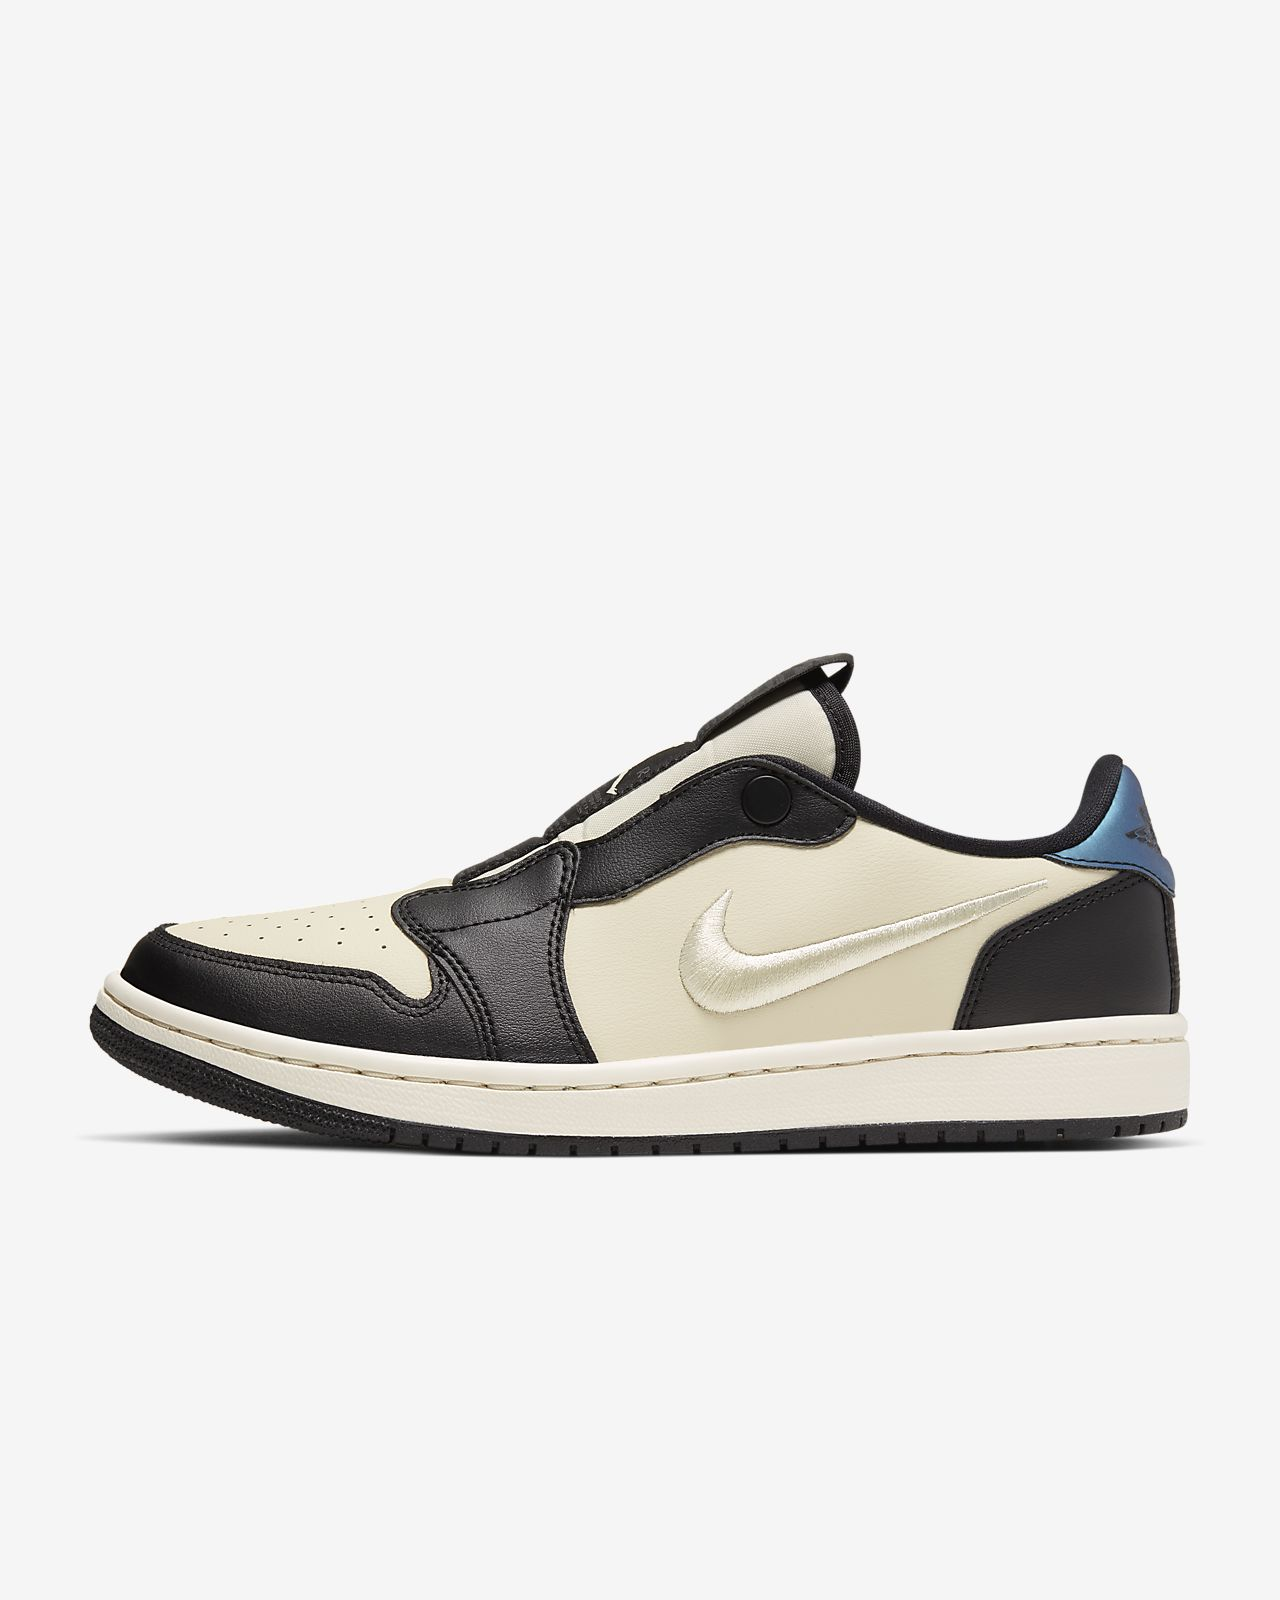 Air Jordan 1 Retro Low Slip 女鞋